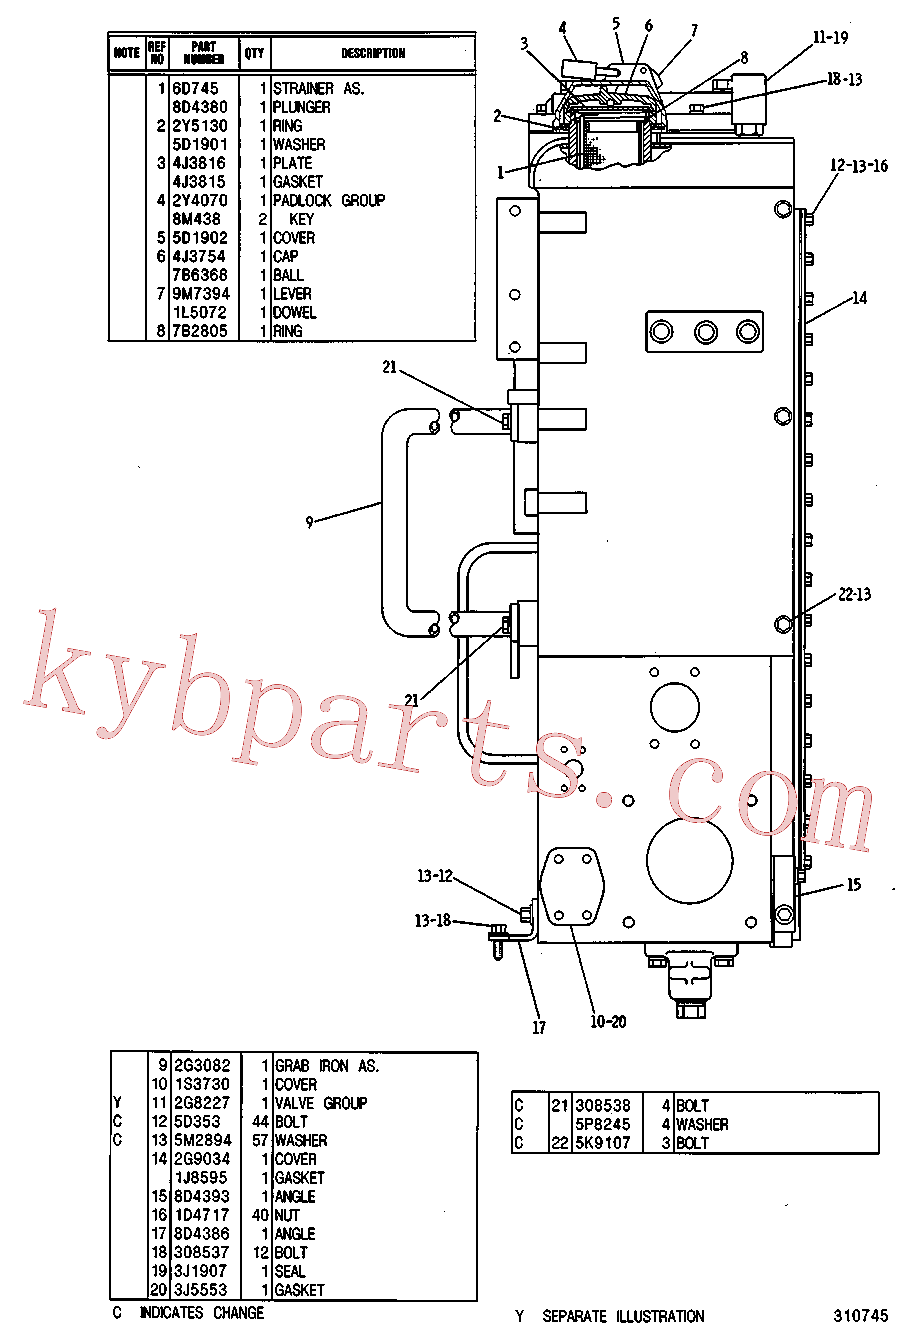 CAT 9M-7394 for 4P Bulldozer(TTT) hydraulic system 2G-6580 Assembly